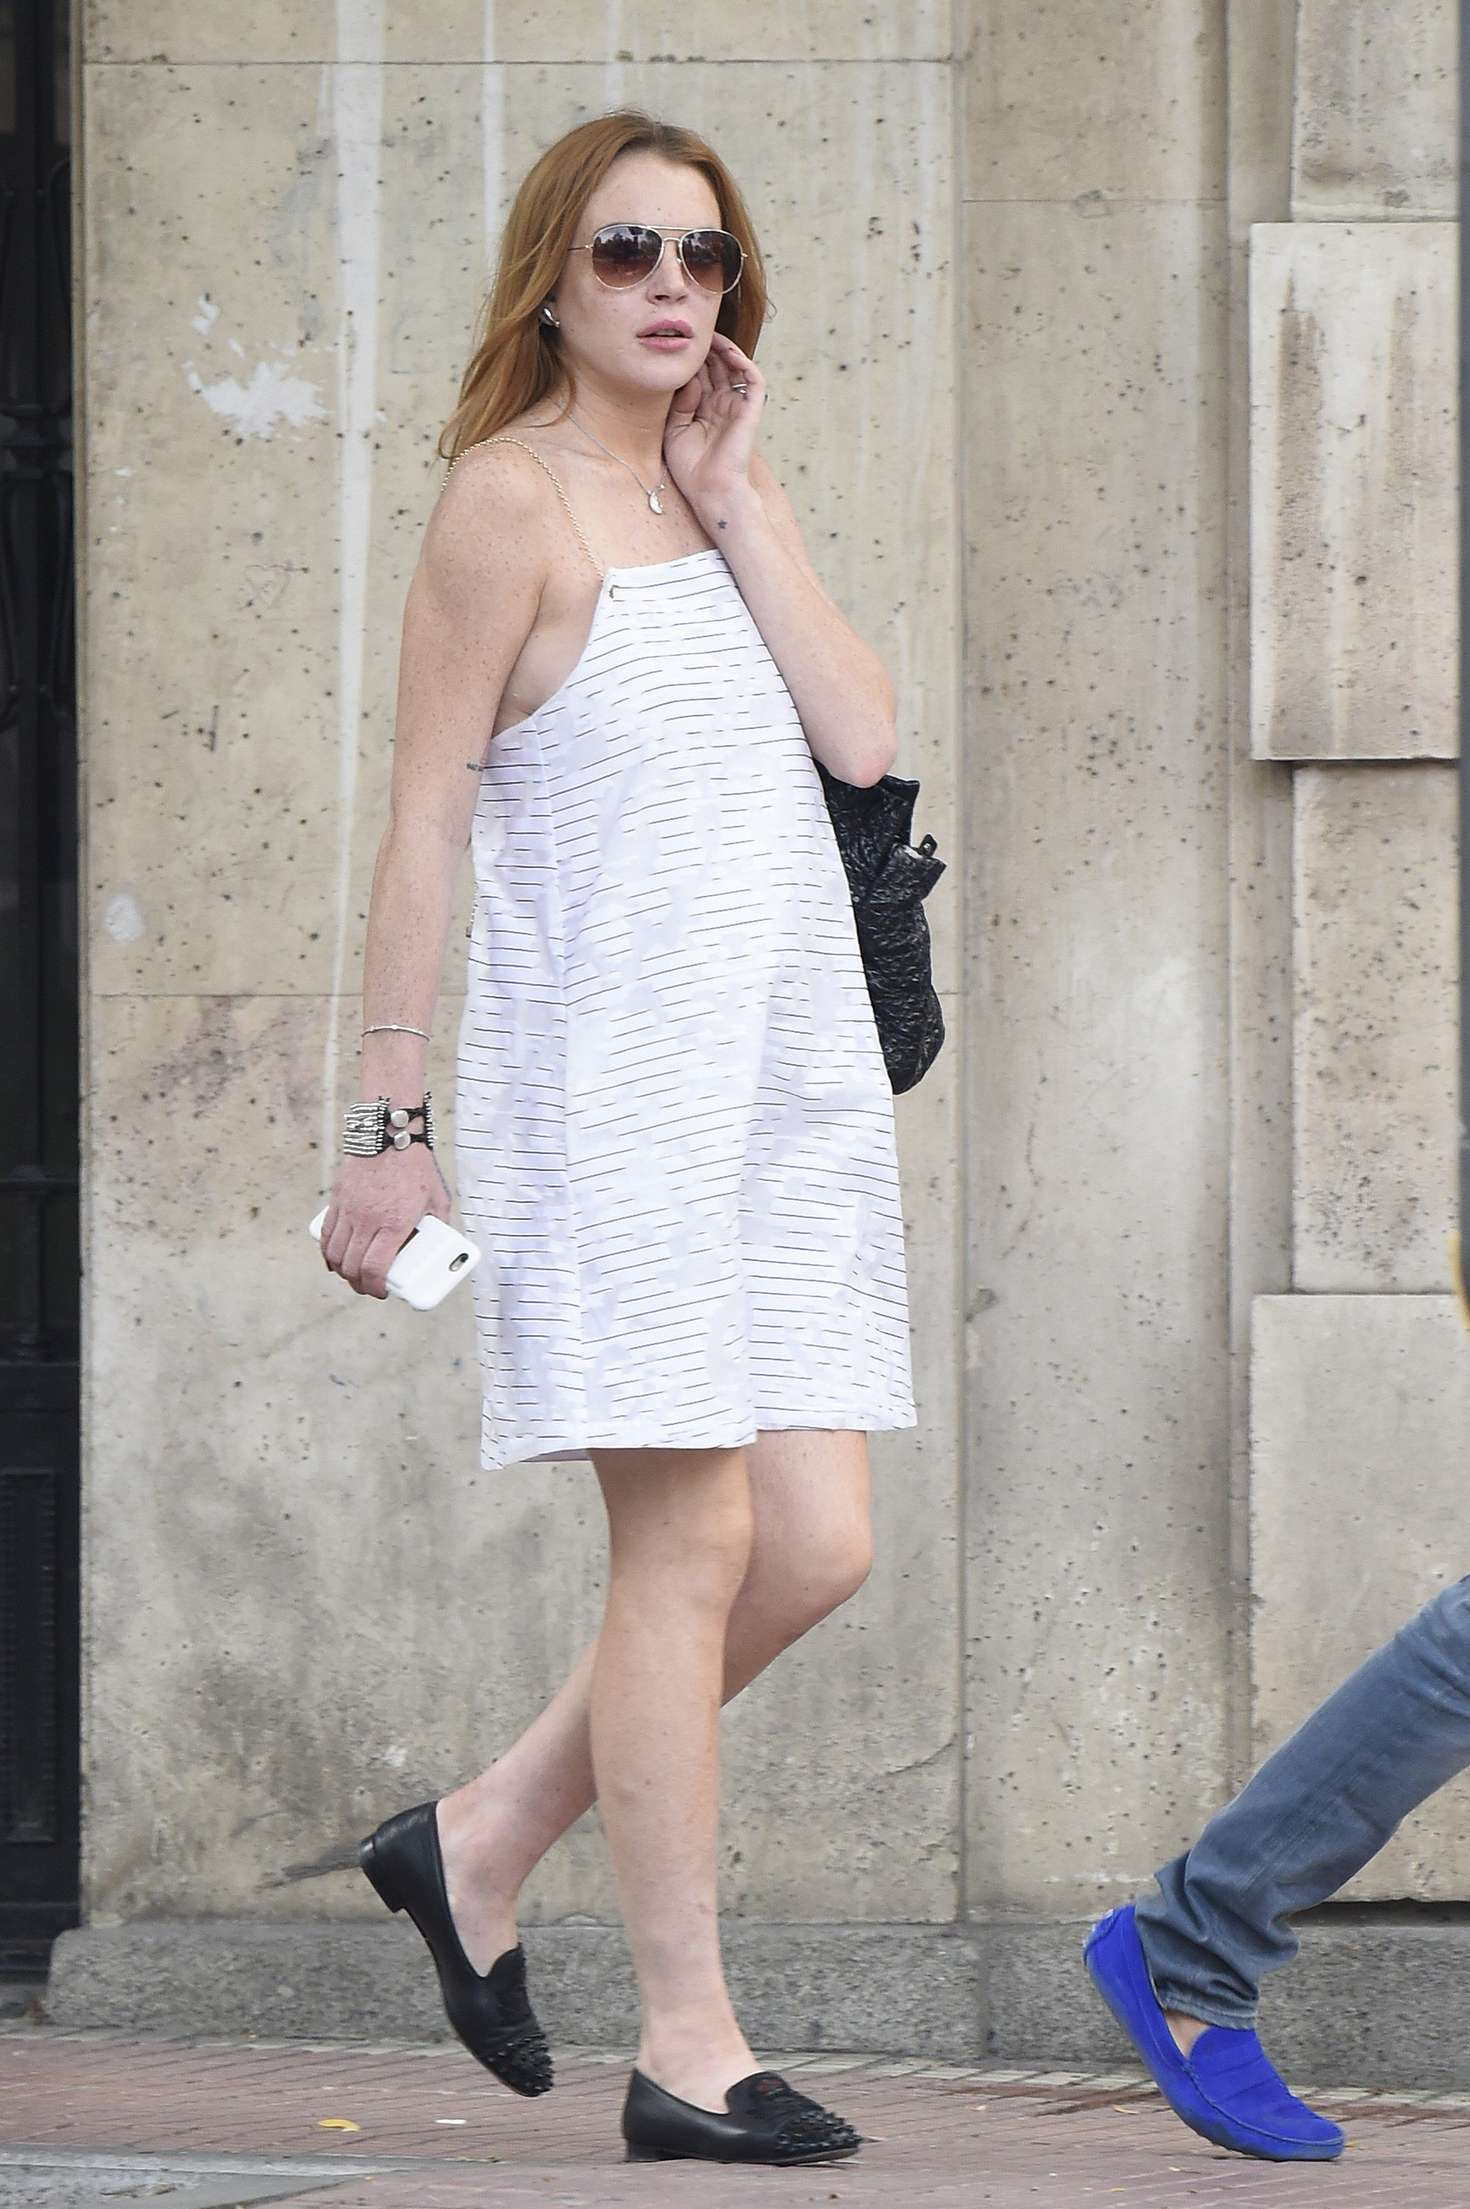 Lindsay Lohan In White Dress Out In Madrid